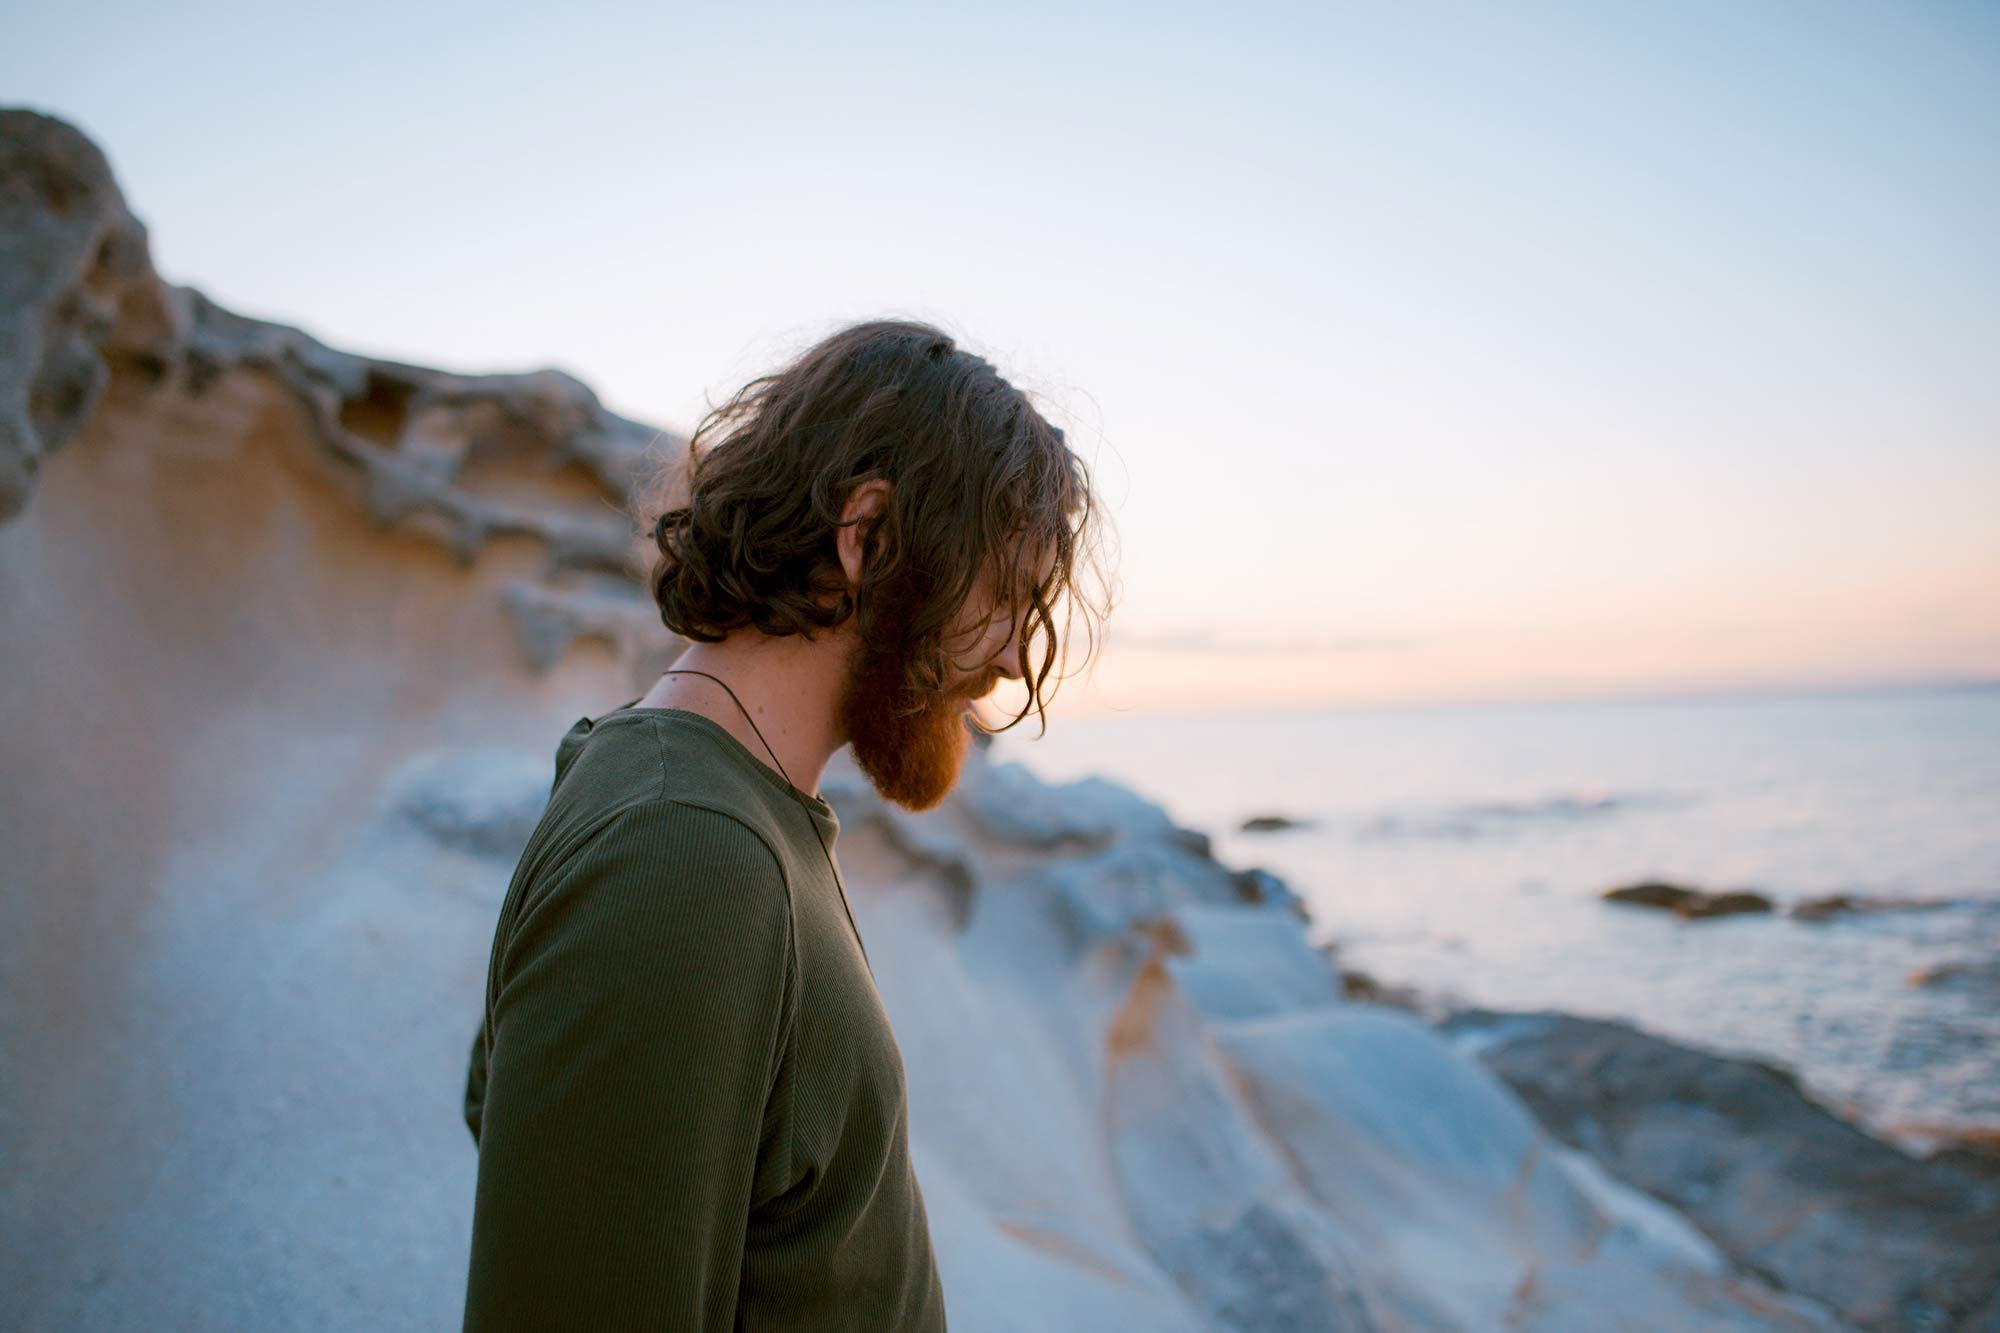 A man wearing a green shirt looks out at a coast of water